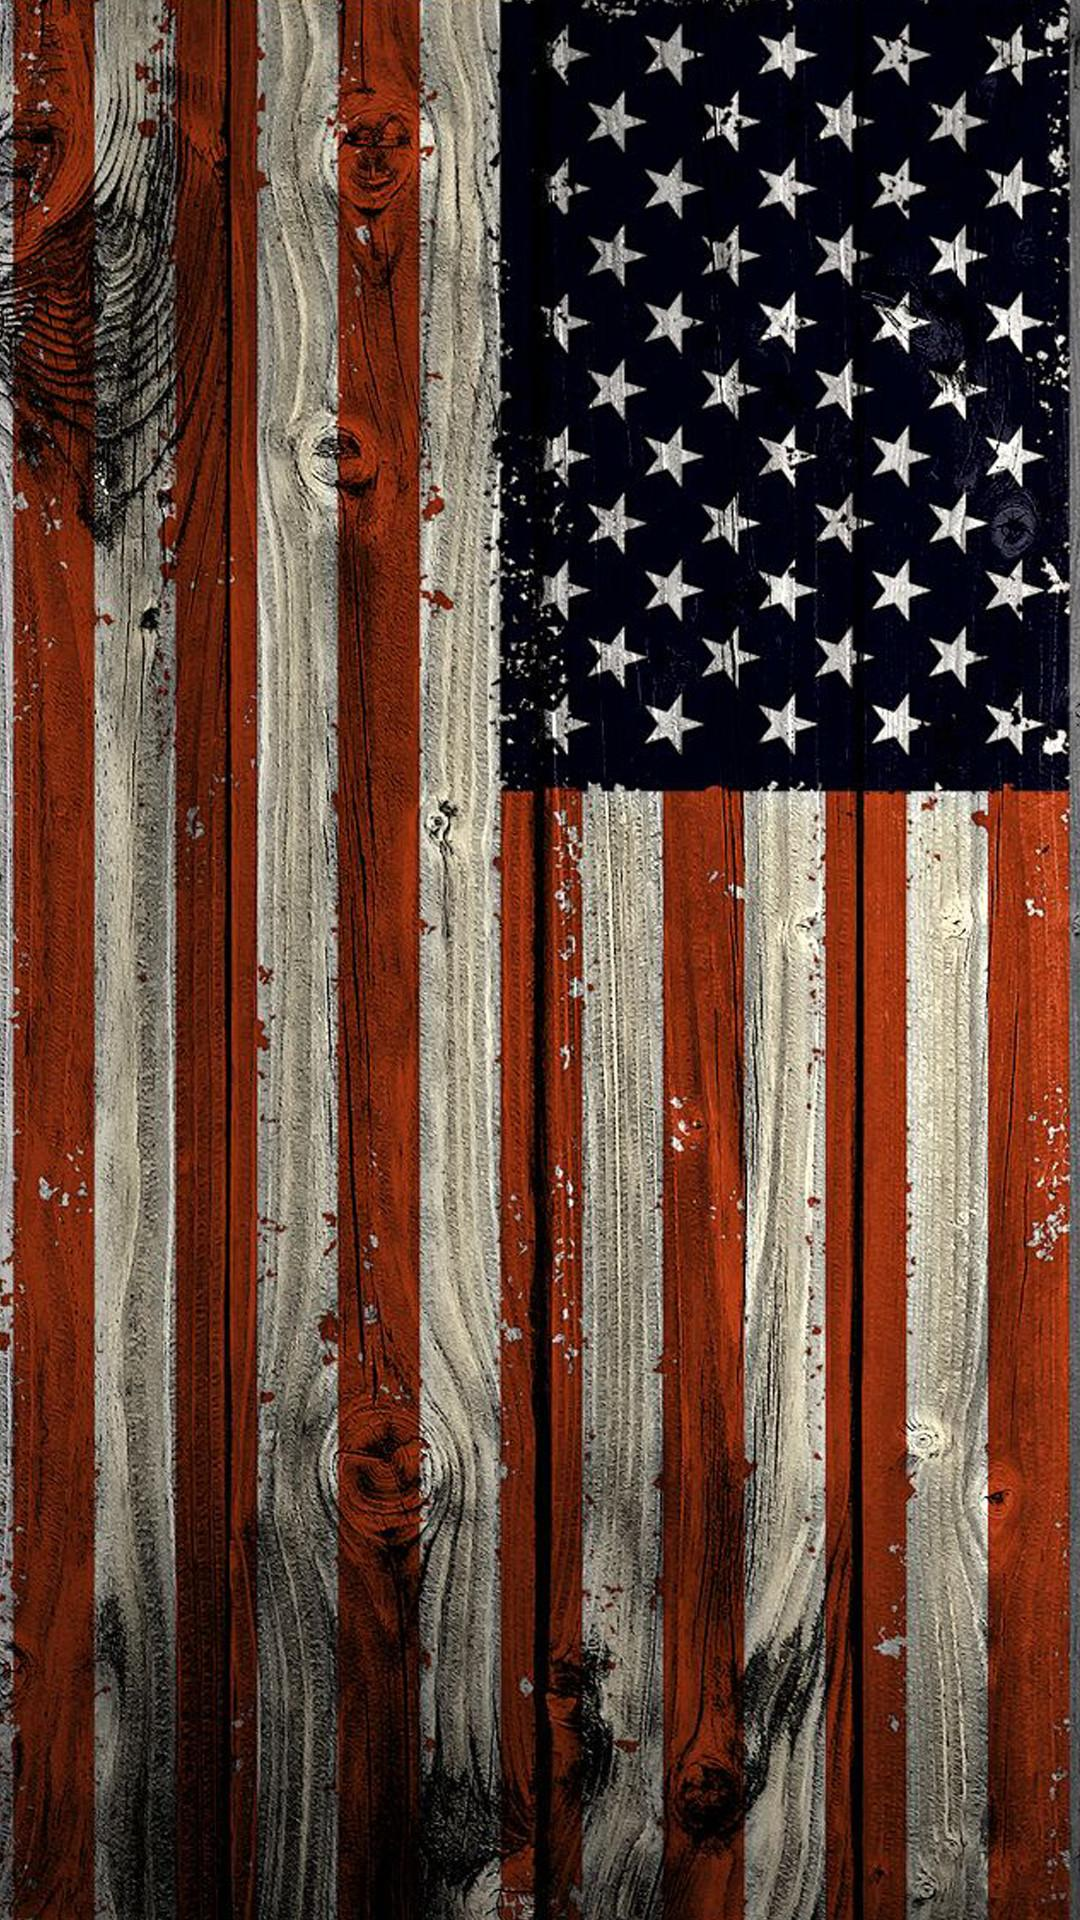 Rustic American Flag Wallpaper - About